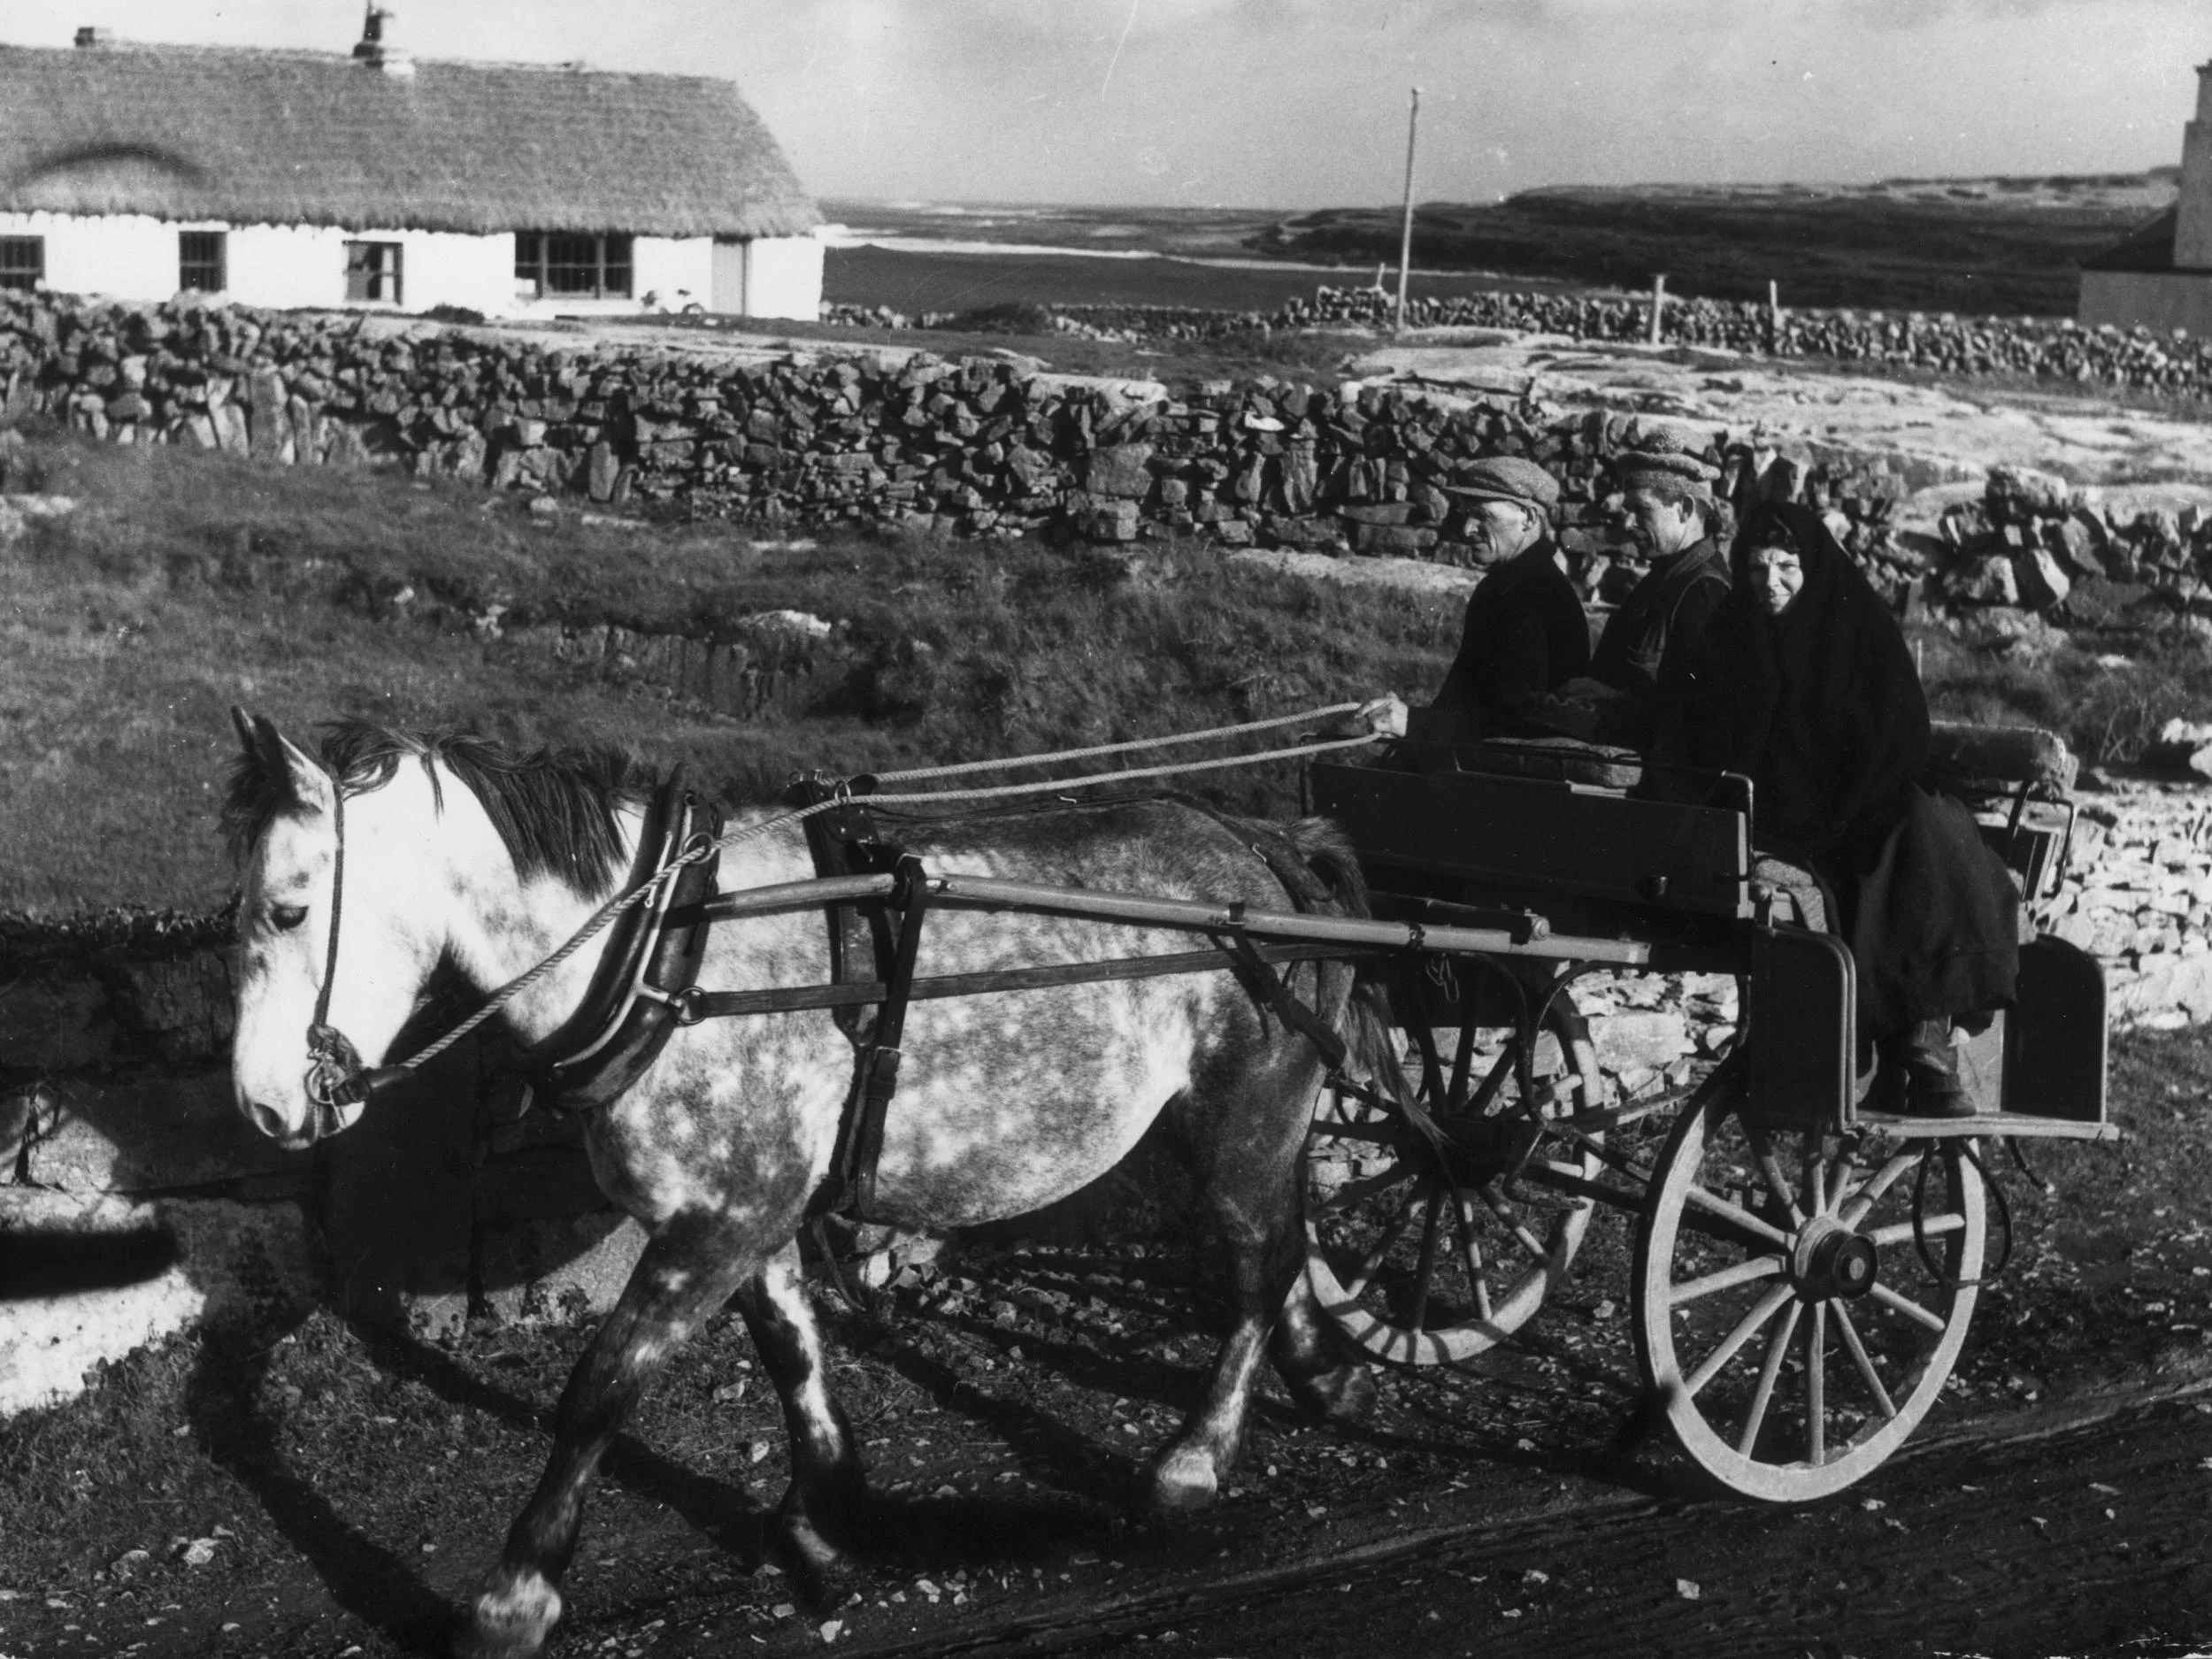 Black Buggy Days 2018 Ireland S Aran Islands A Place Lost In Time The Independent